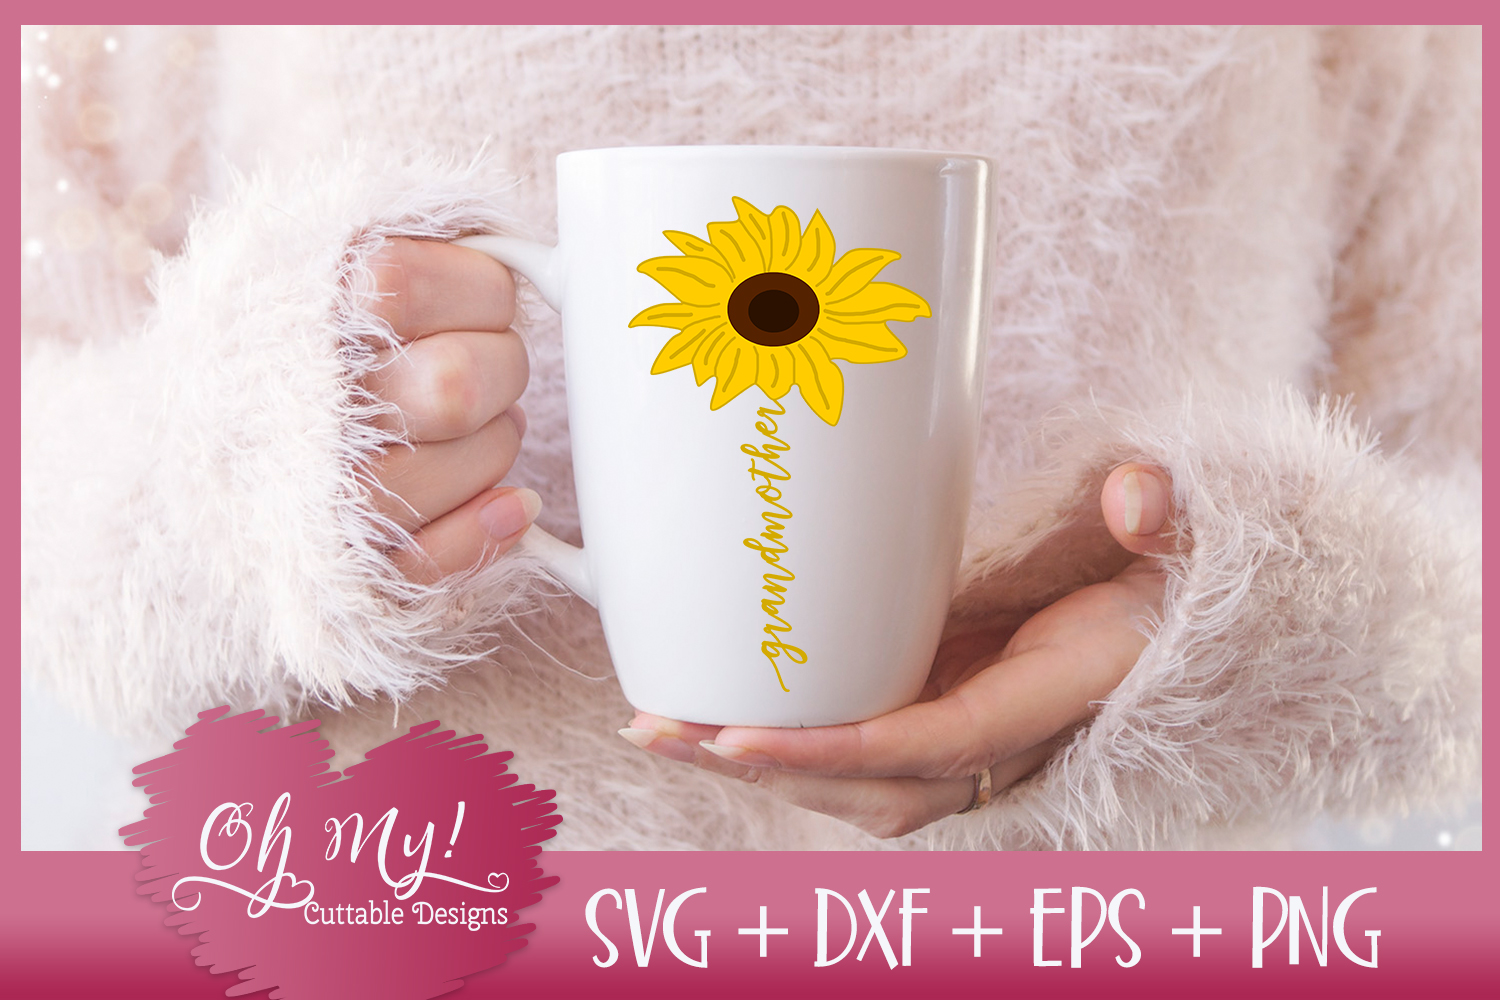 Grandmother Sunflower - SVG EPS DXF PNG Cutting File example image 2